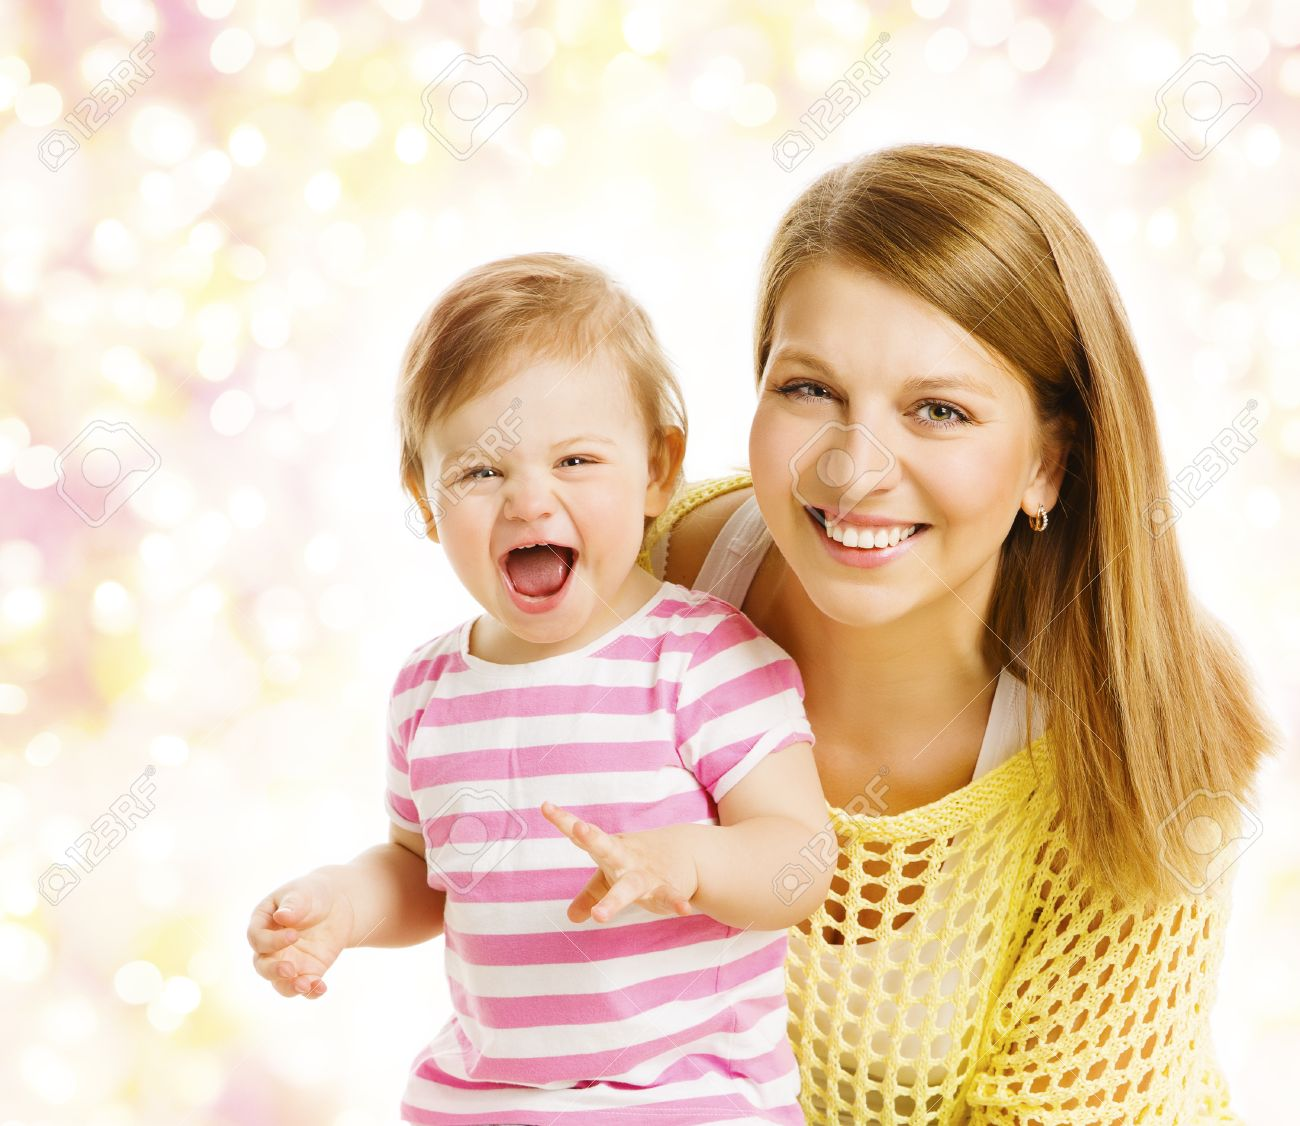 Mother and baby girl family portrait smiling woman with happy laughing kid daughter one